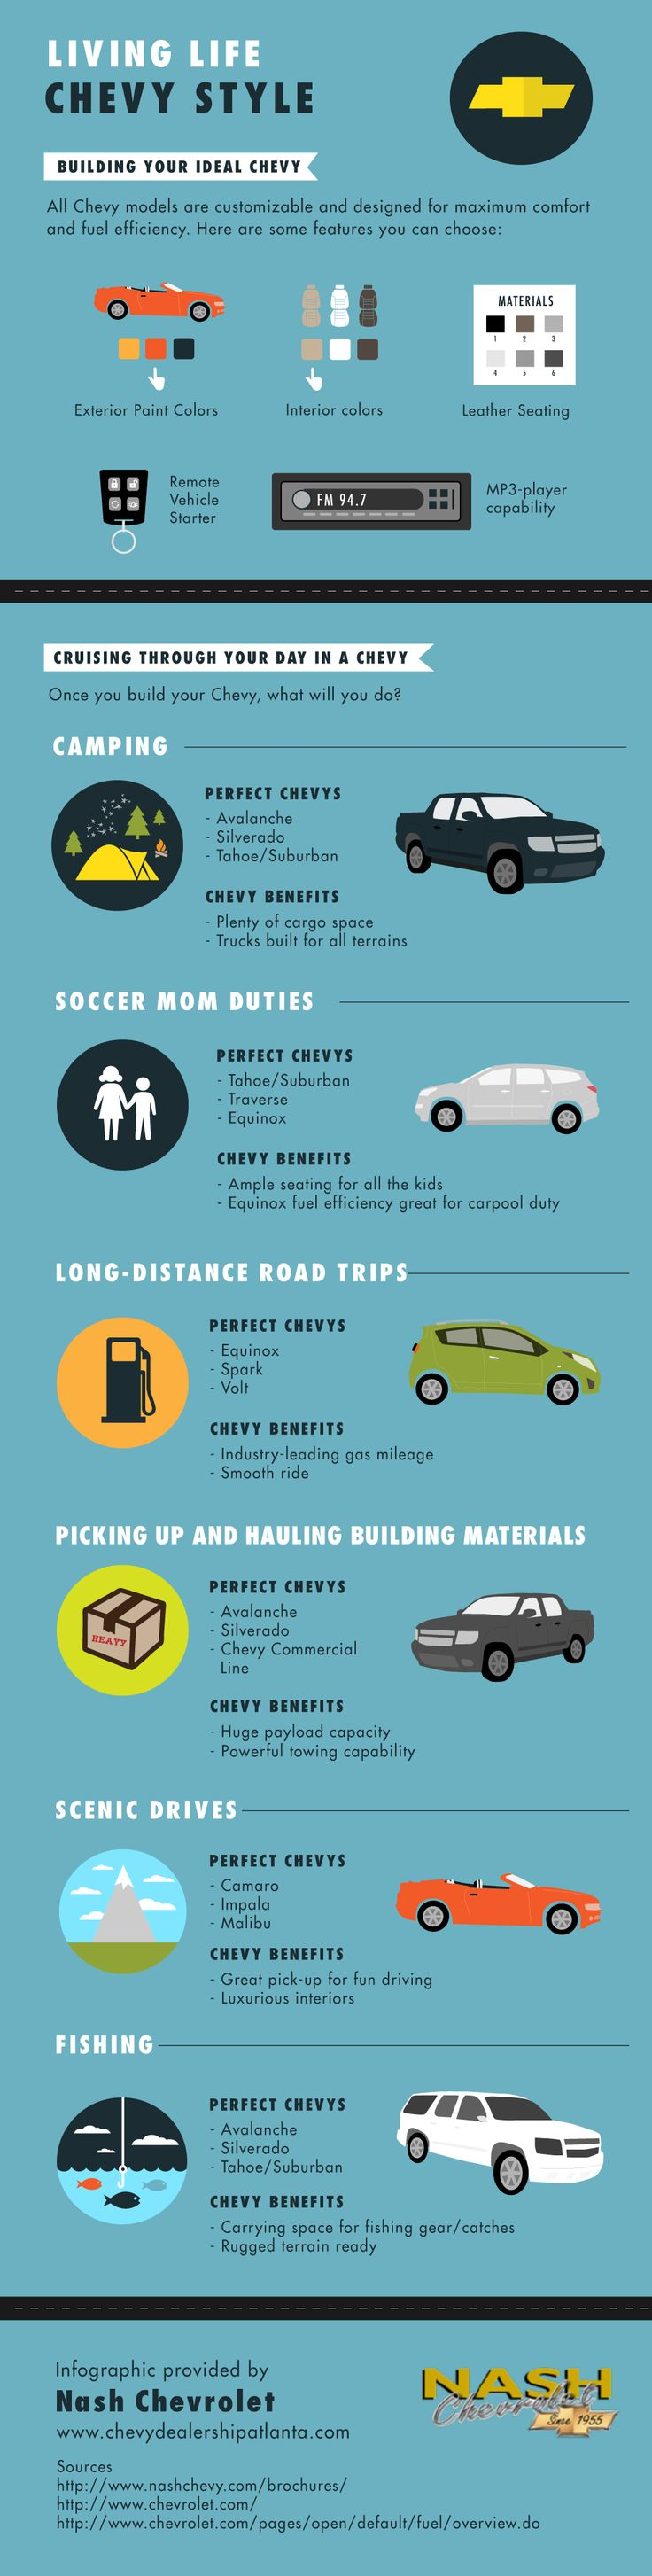 What is the perfect Chevy to take on a camping trip? The Avalanche, Silverado, and Tahoe all offer plenty of cargo space and are built for all terrains. Learn about customizing your ideal Chevy by reading through this infographic.